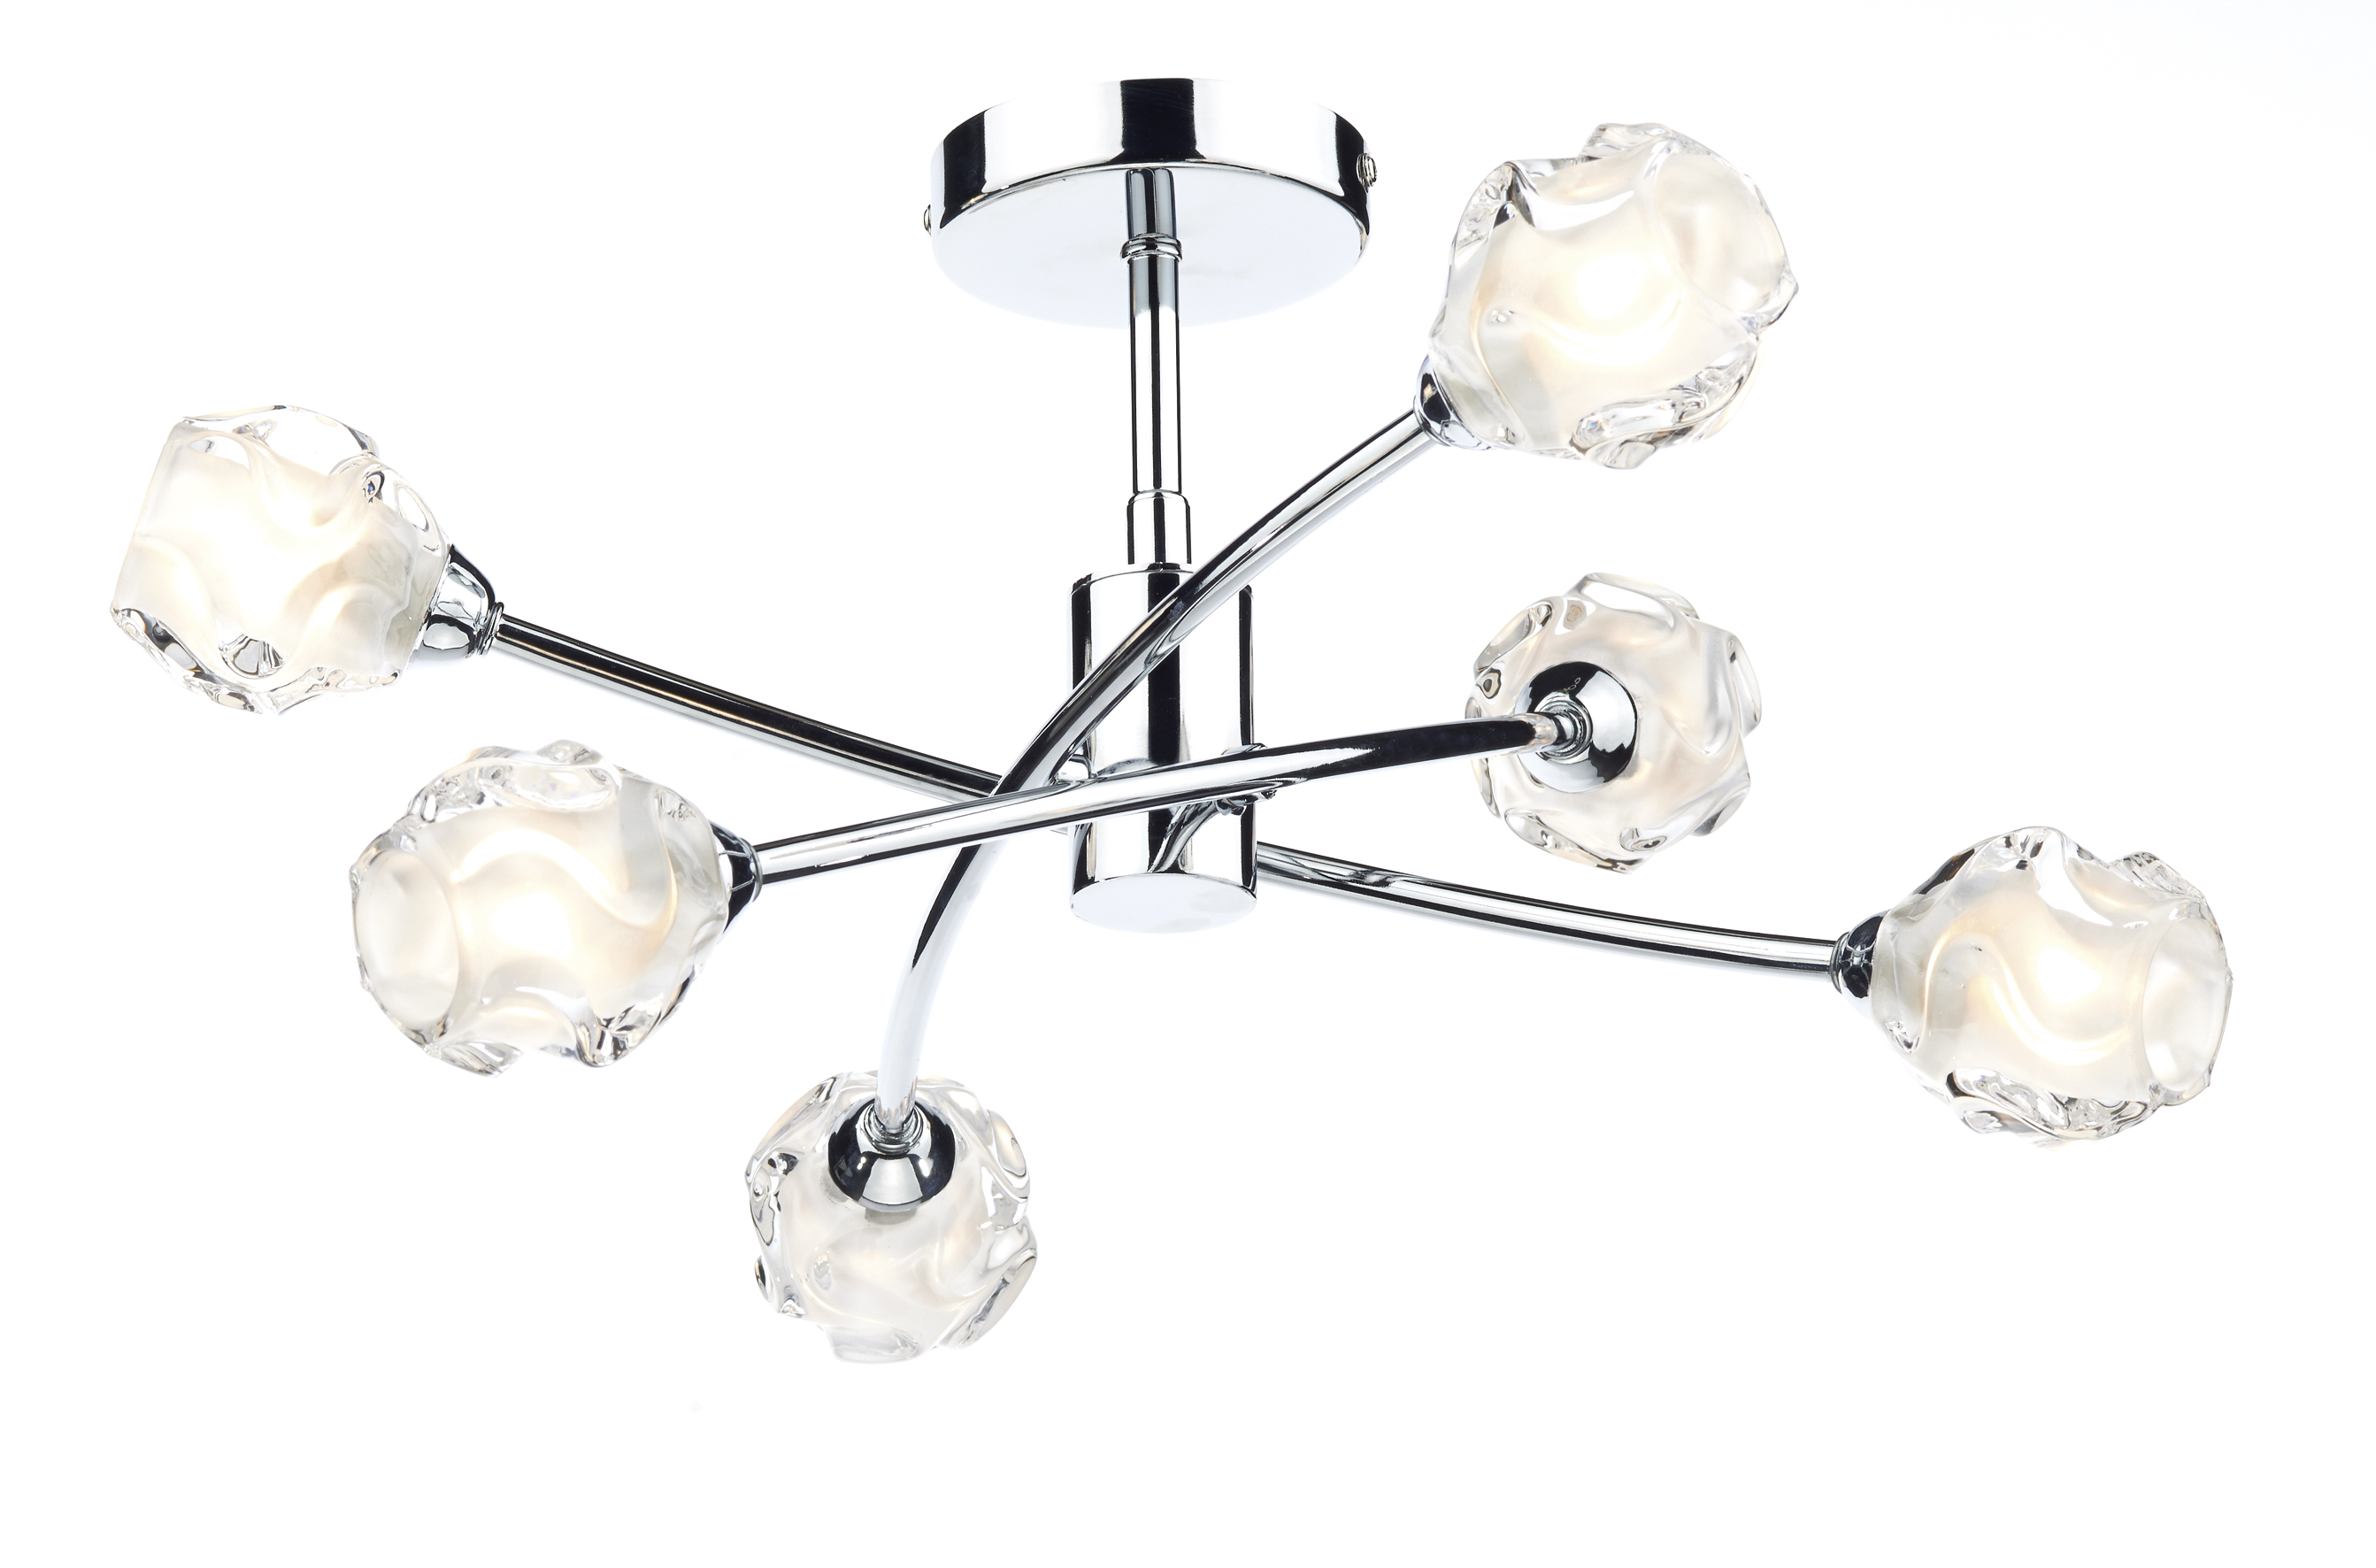 Dar Oberoi 6 Light Semi Flush Polished Chrome Obe0650 22135 P furthermore On Off Fan Sender Wire Diagram likewise Ceiling Fan Light Installation Diagram Wiring furthermore Lyon 8 Light Pendant Polished Chromecrystal 1019294 P in addition Harbor Bay Ceiling Fan Wiring. on remote control ceiling fans with lights